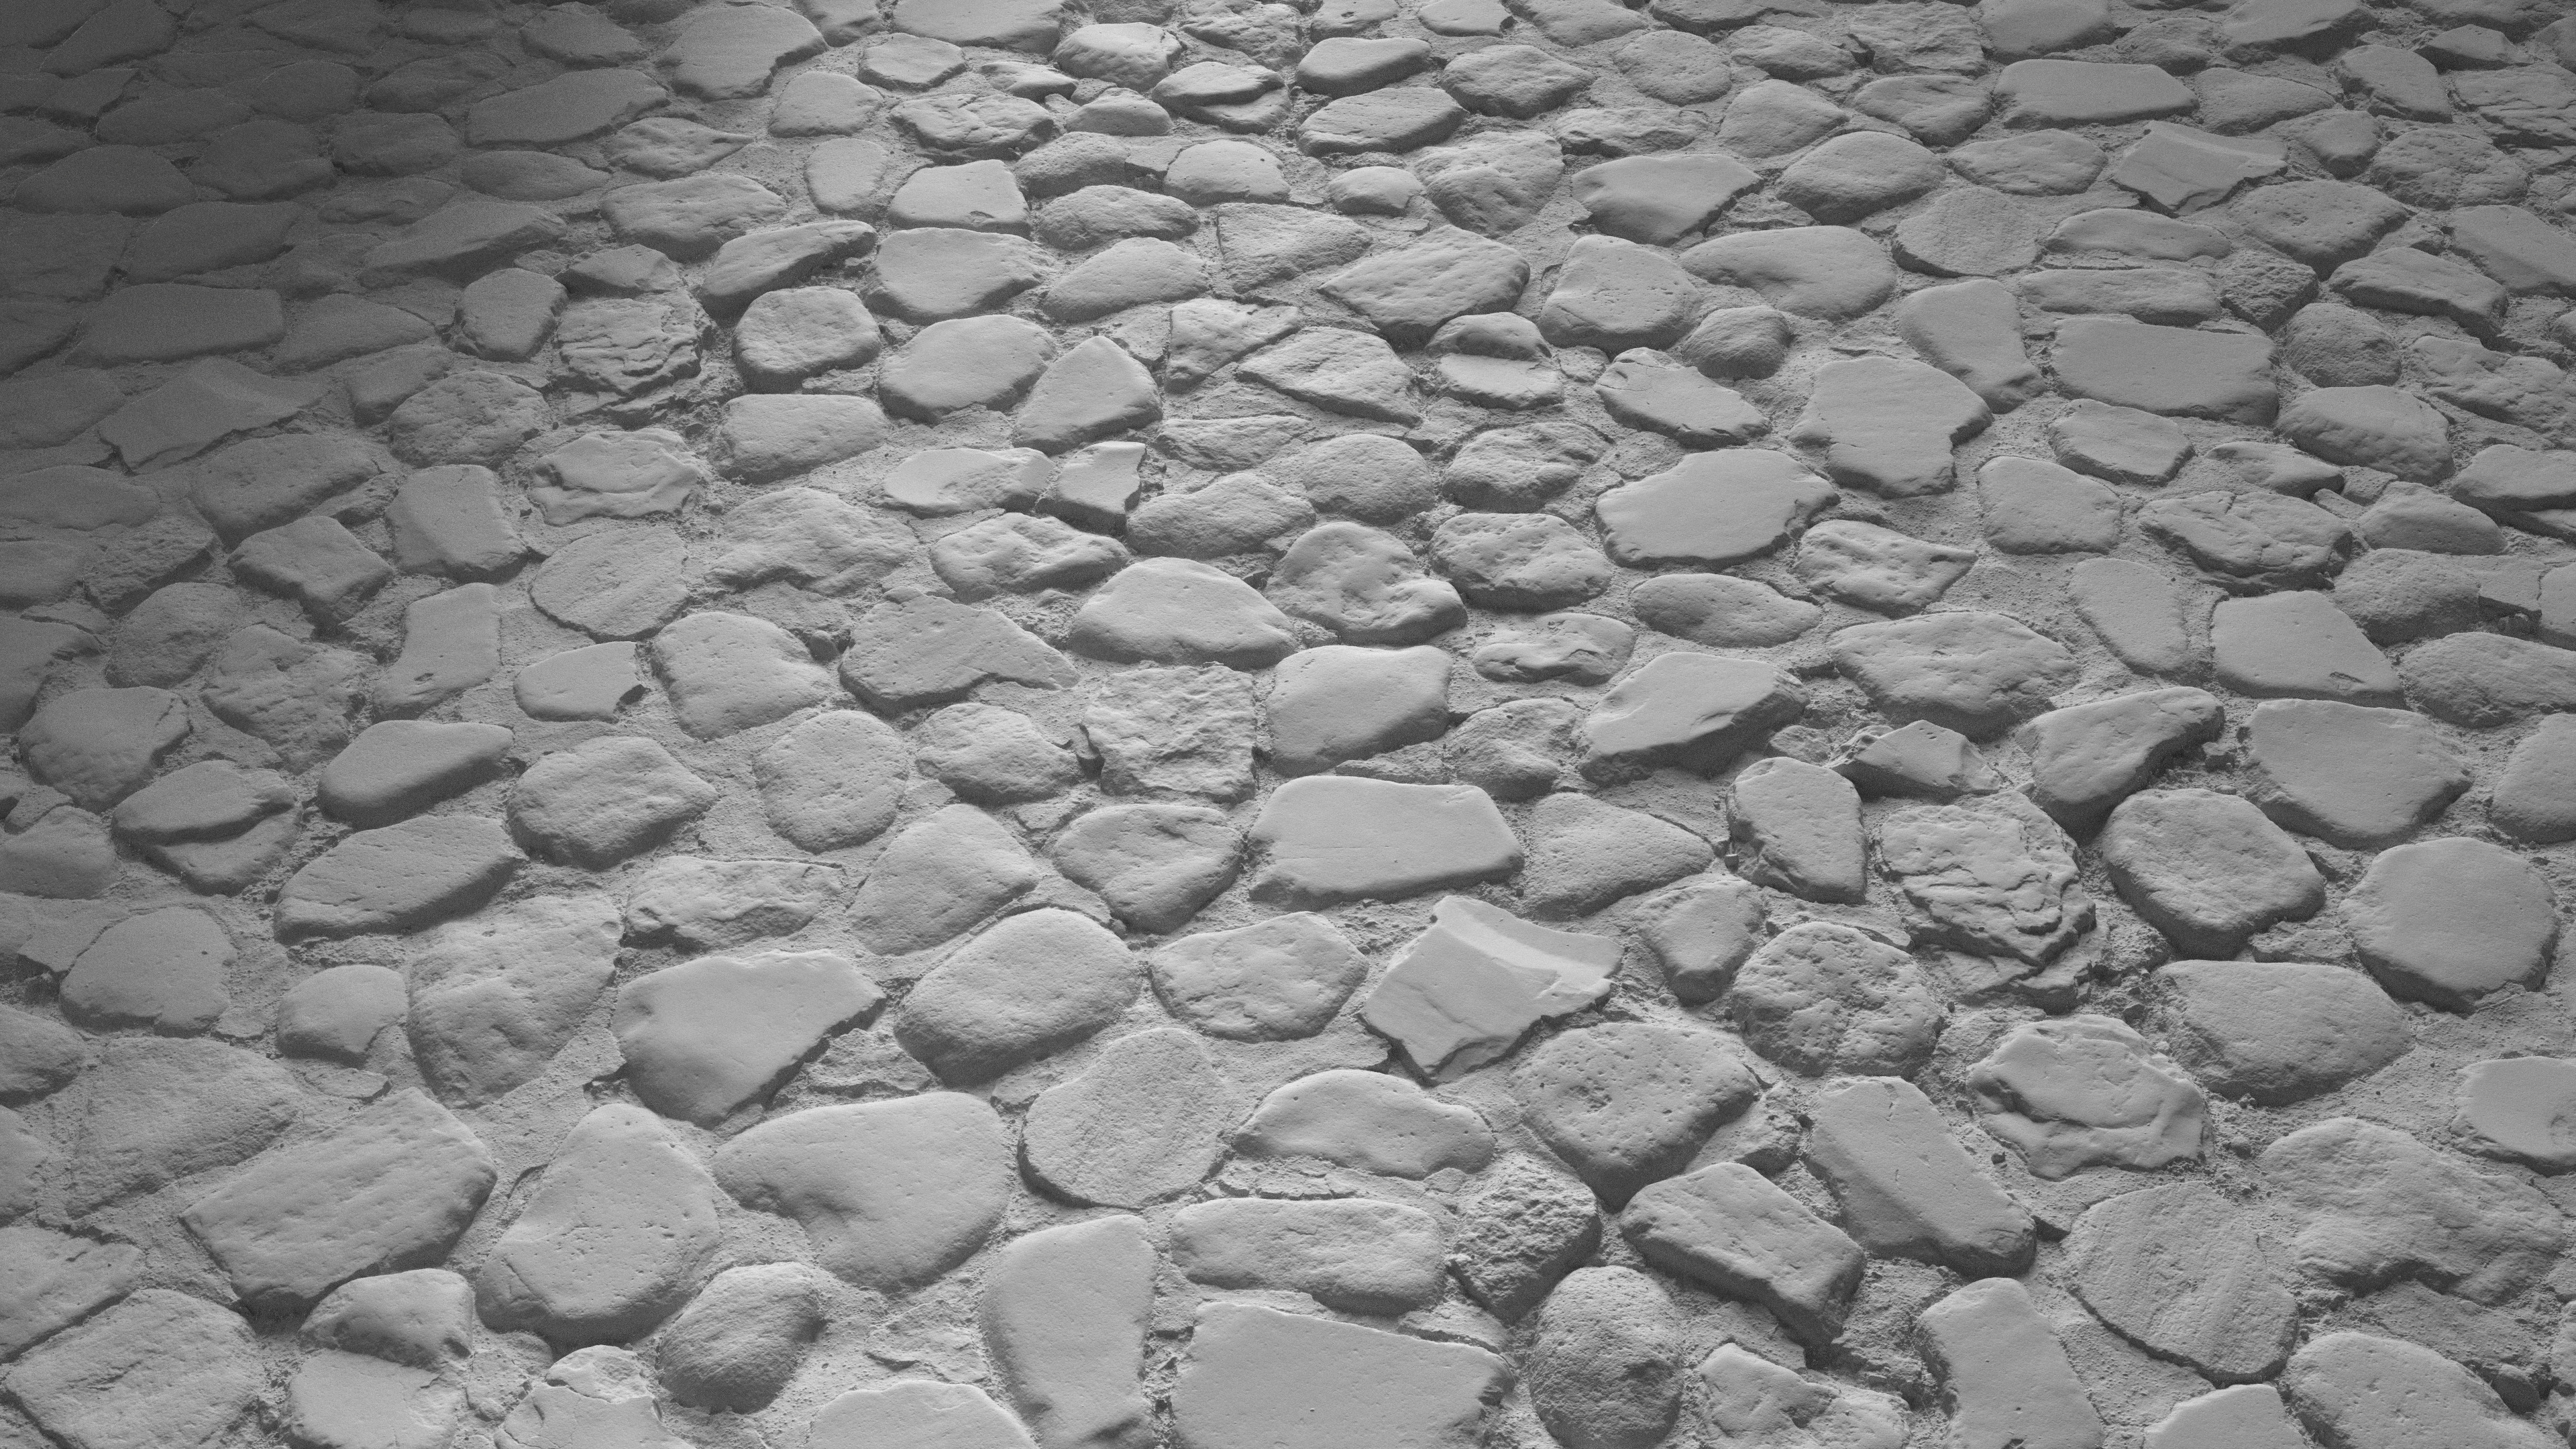 3d Scanned Cobblestone 3x3 Meters